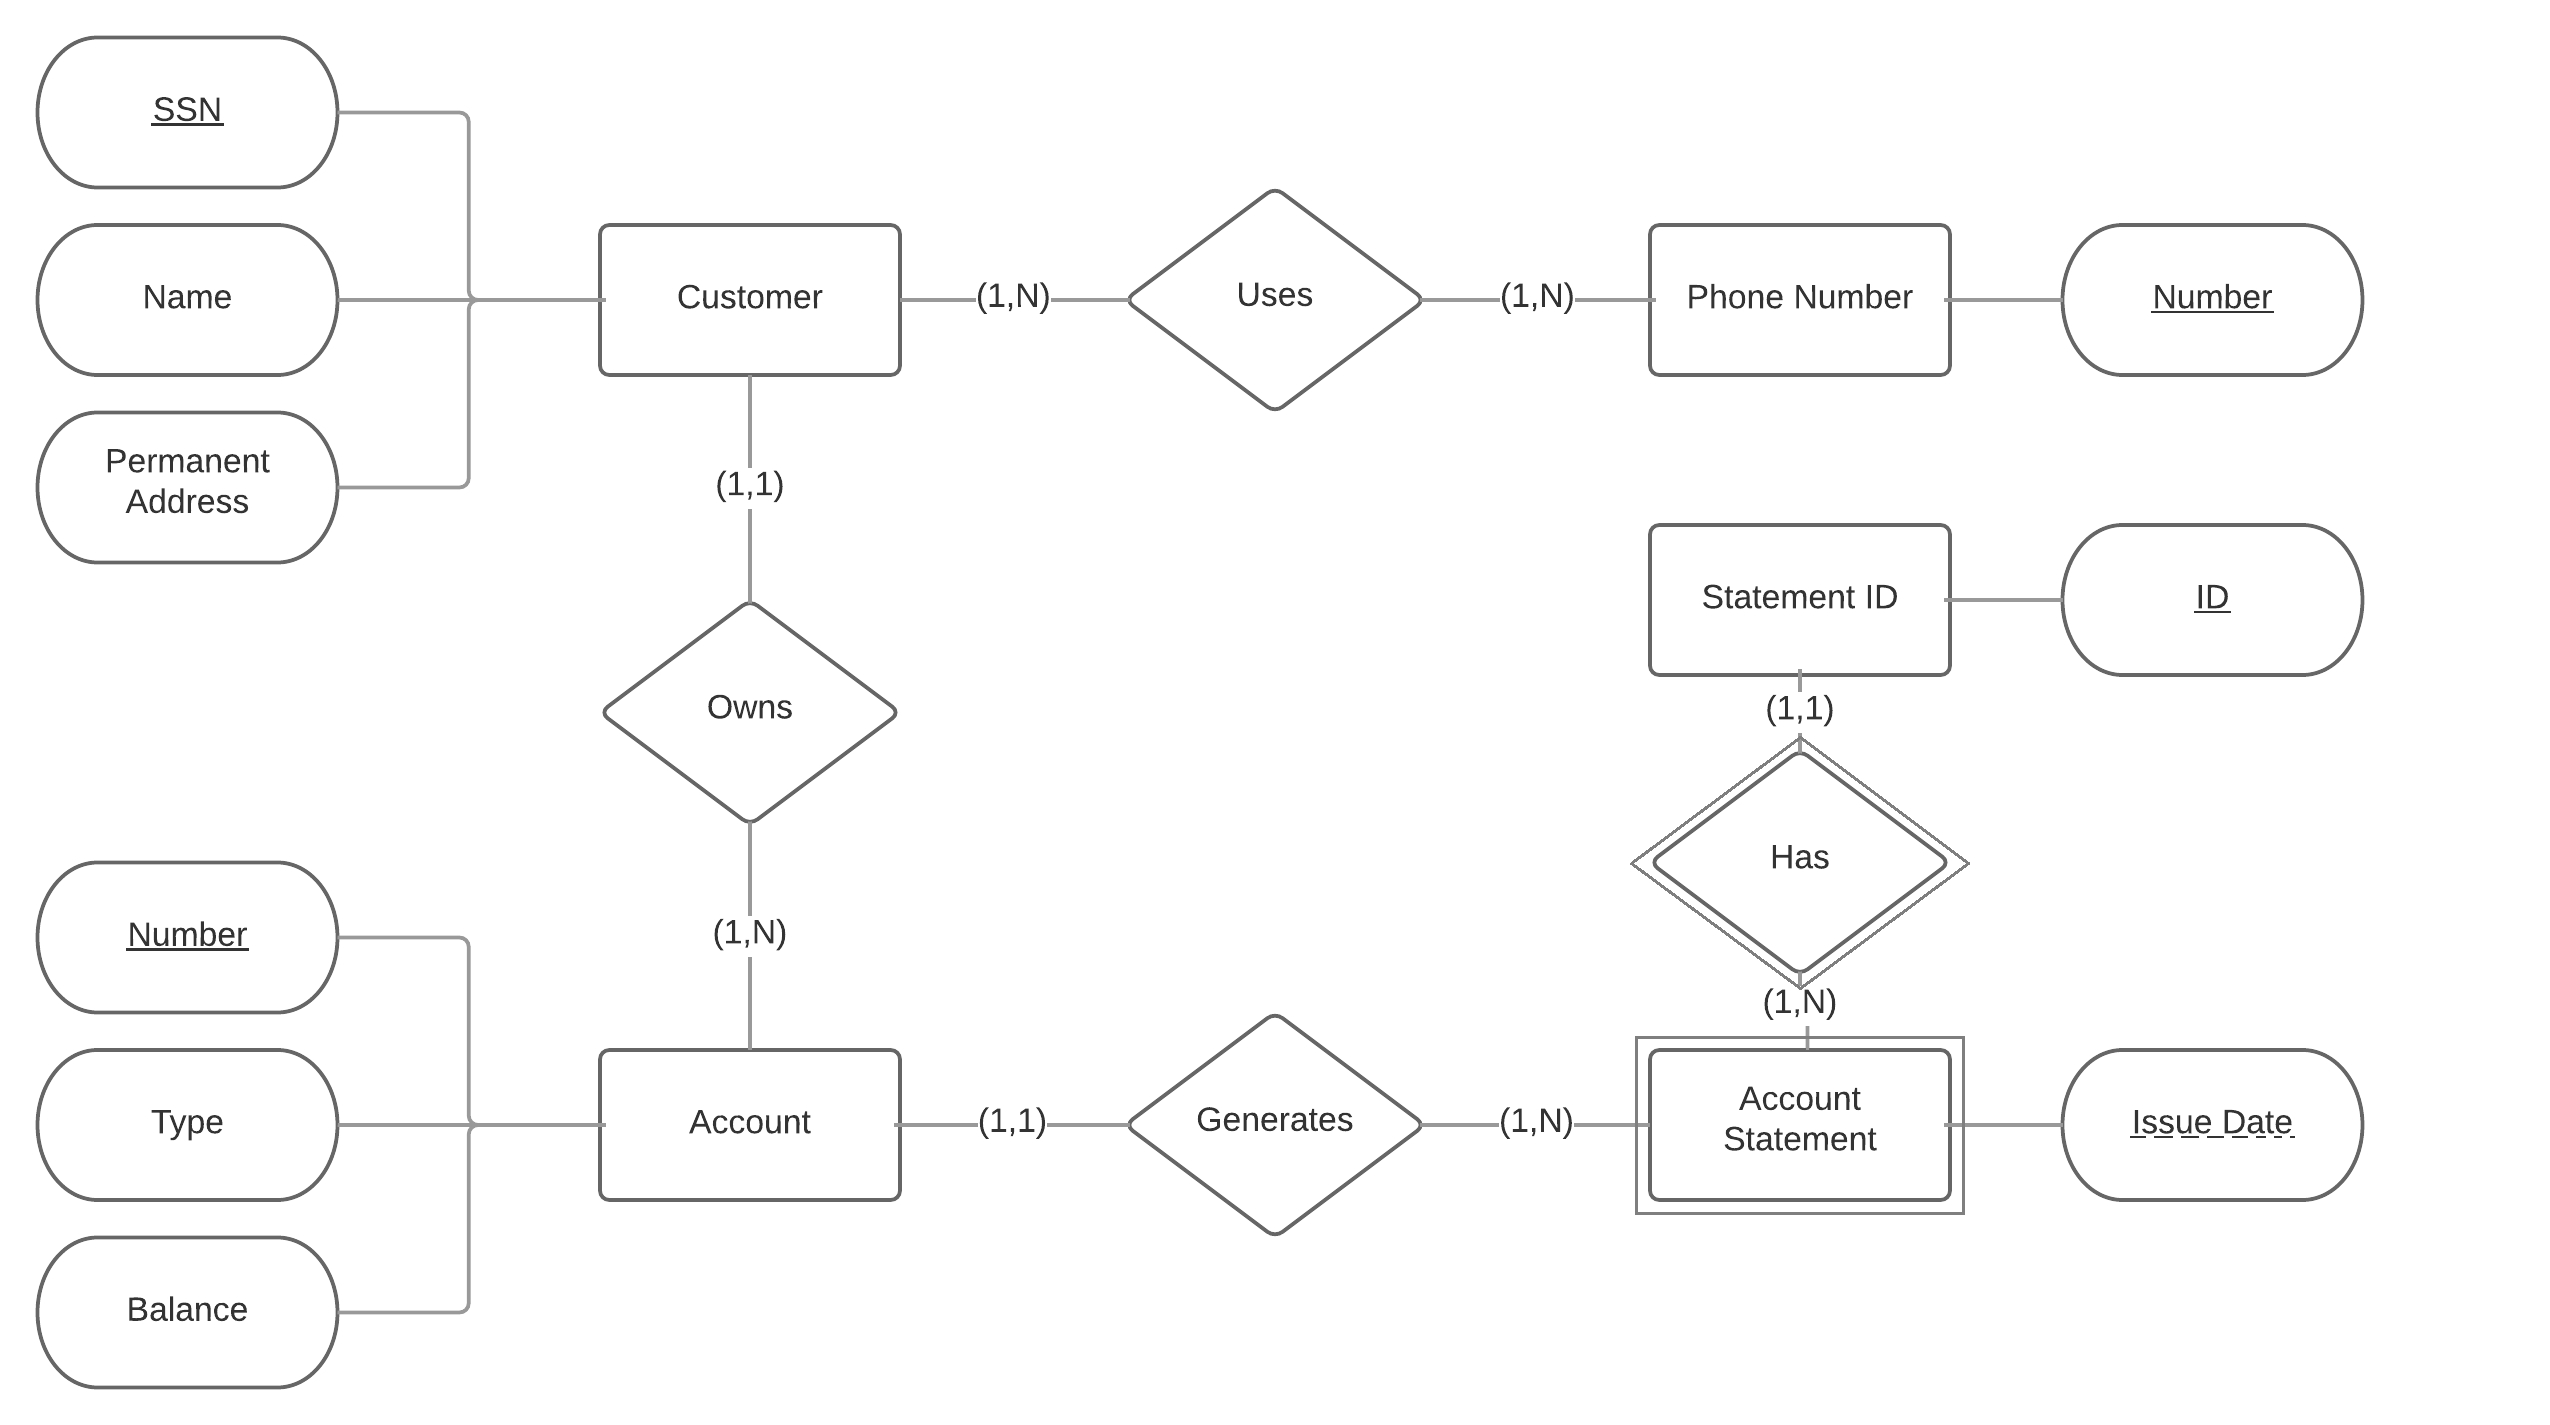 Is My Entity-Relationship Diagram About Customers And pertaining to Er Diagram With 5 Entities